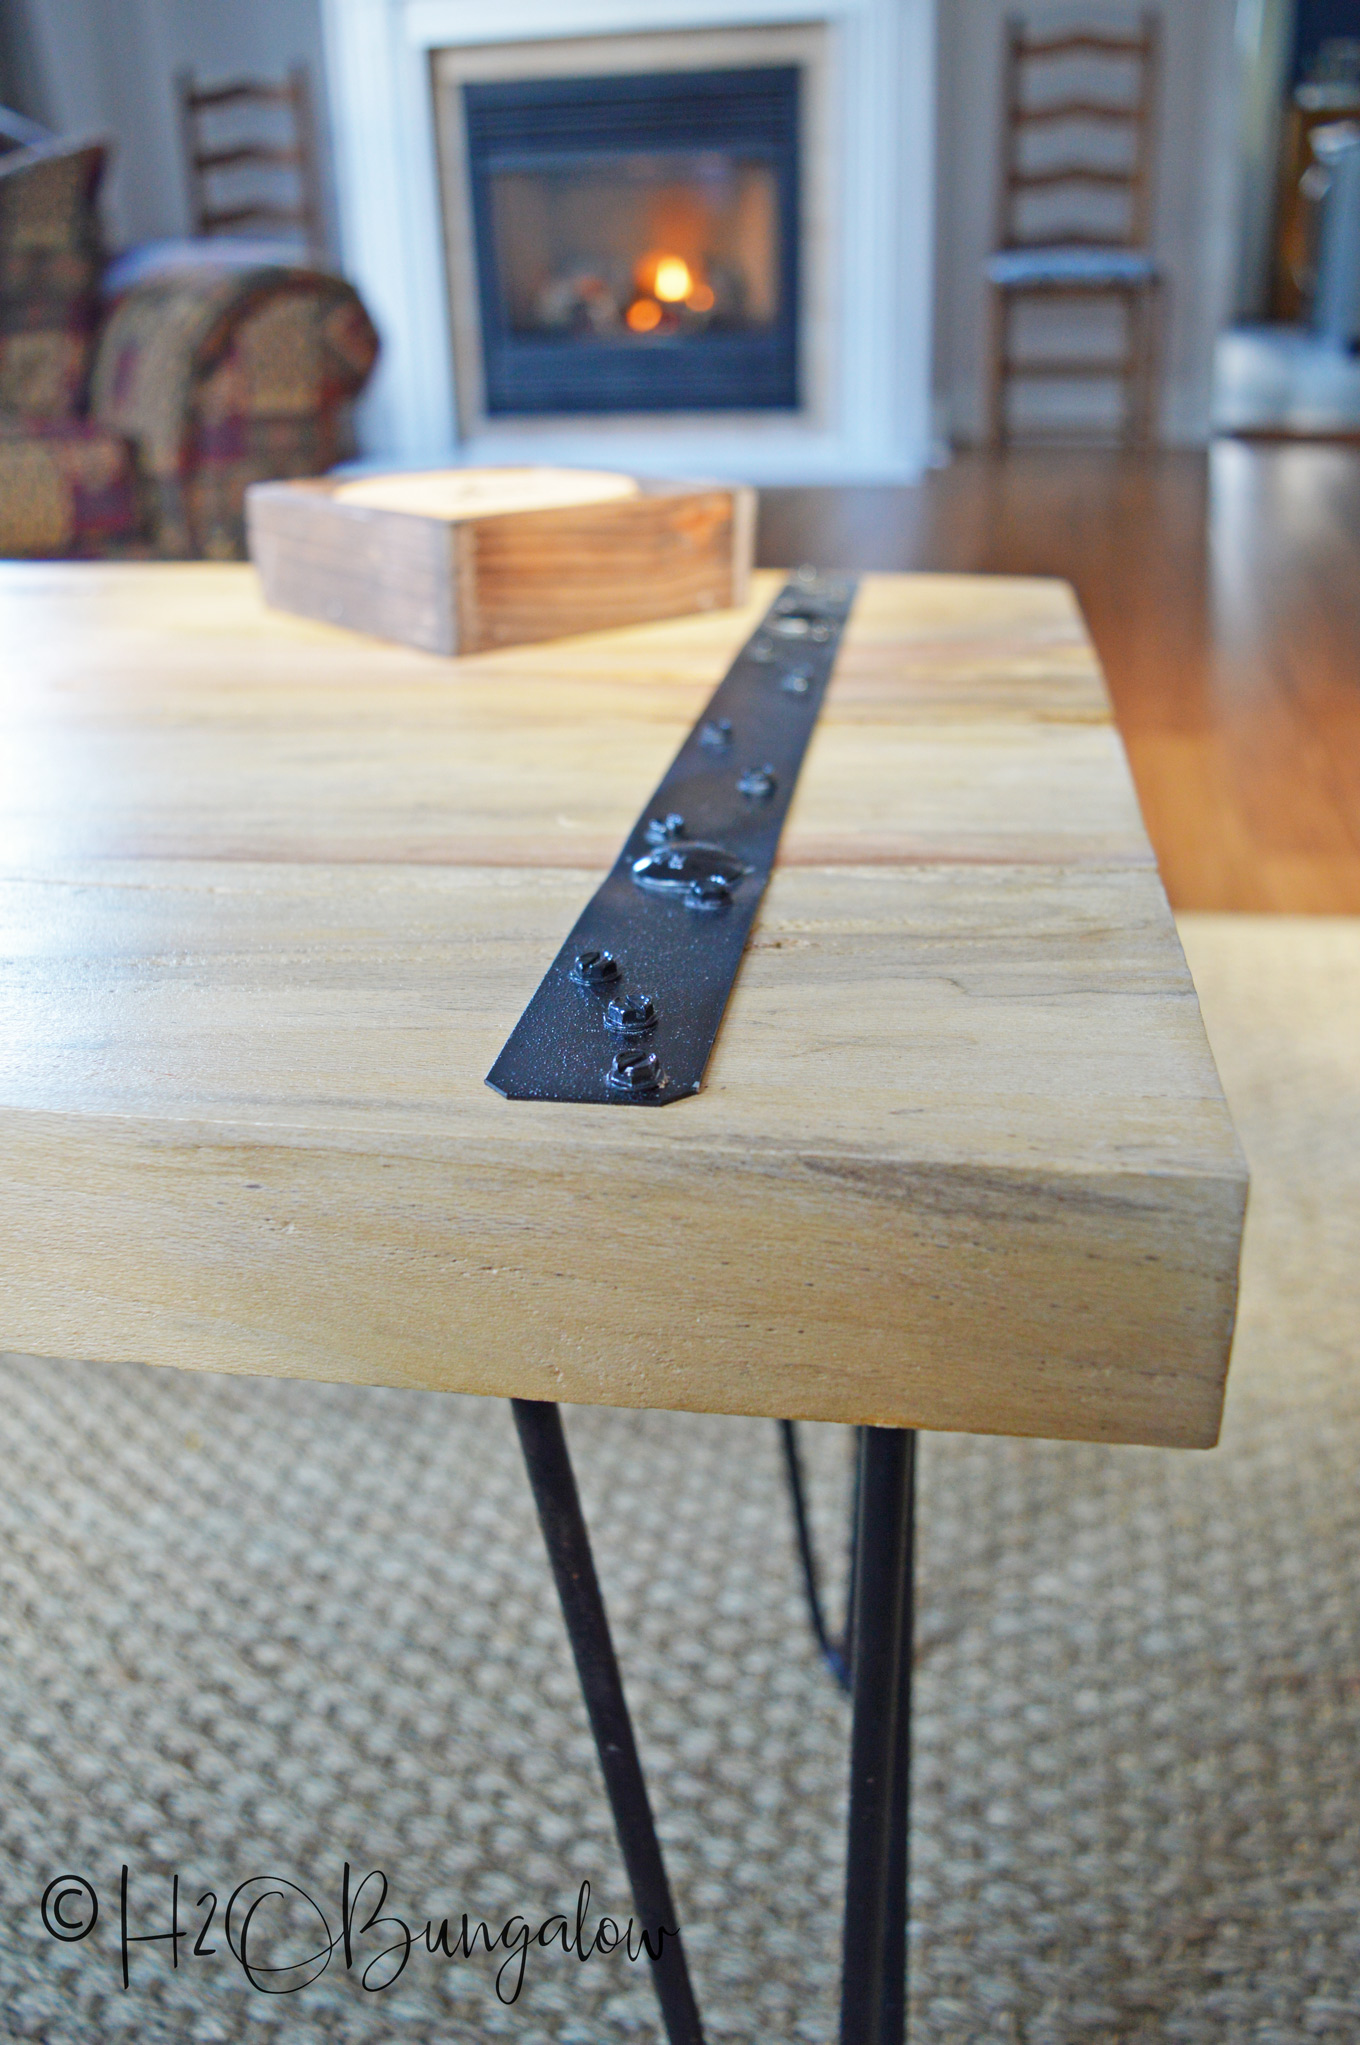 I'm loving the simplicity of this DIY rustic coffee table. I used two wide planks for the table top, but you could easily make a coffee table, or end tables with several wood boards or planks. Modify these DIY plans a little and it's an easy build requiring few tools and not a lot of time.